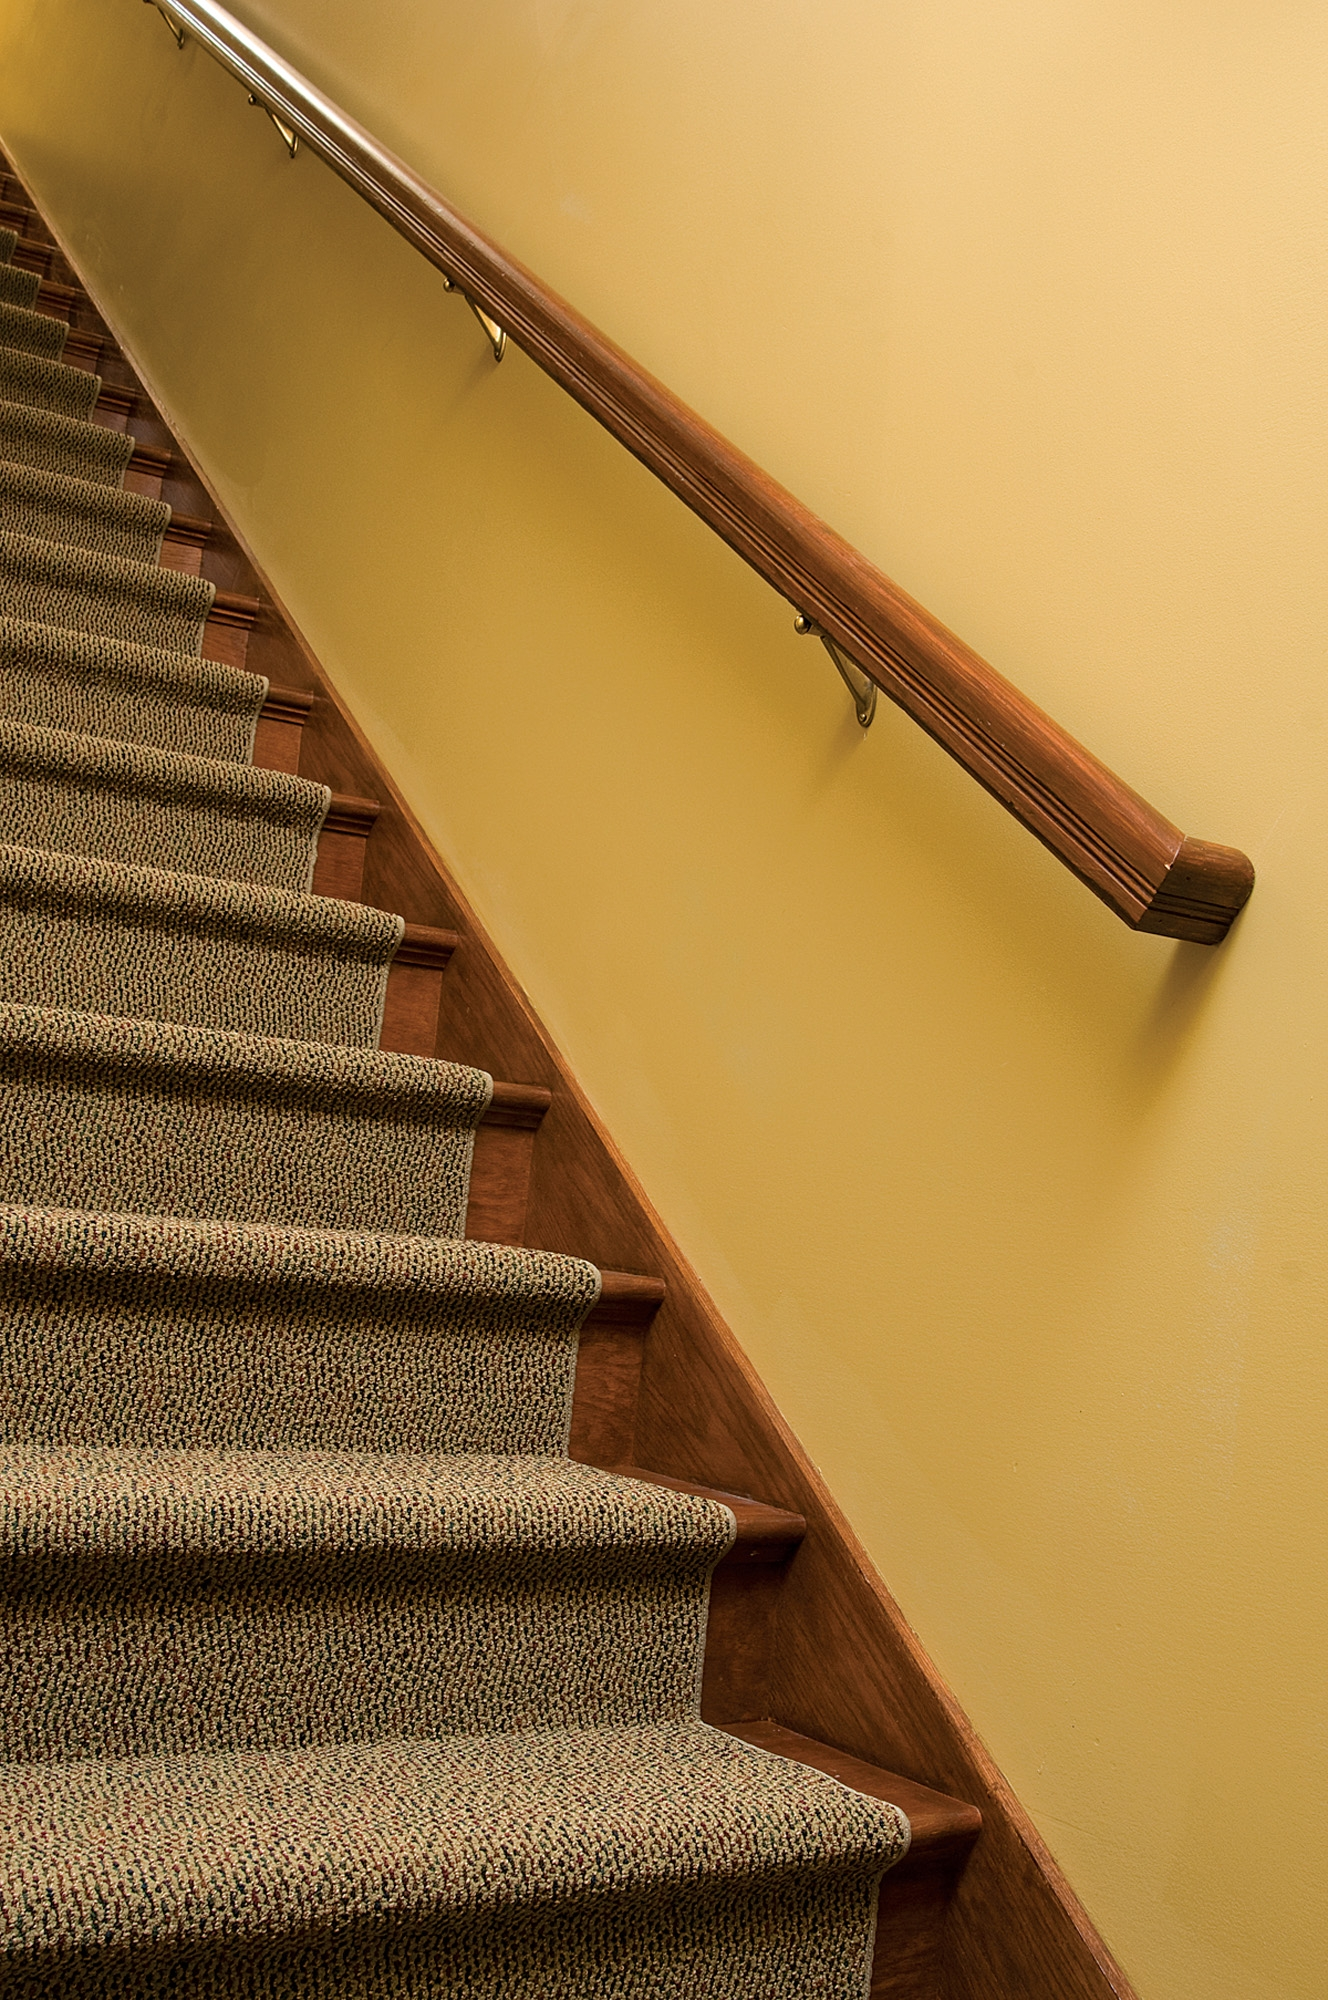 How To Hang A Stair Rail Old House Journal Magazine | Interior Handrails For Steps | Aircraft Cable | Wrought Iron | Western | Closed Staircase | Stair Bannister